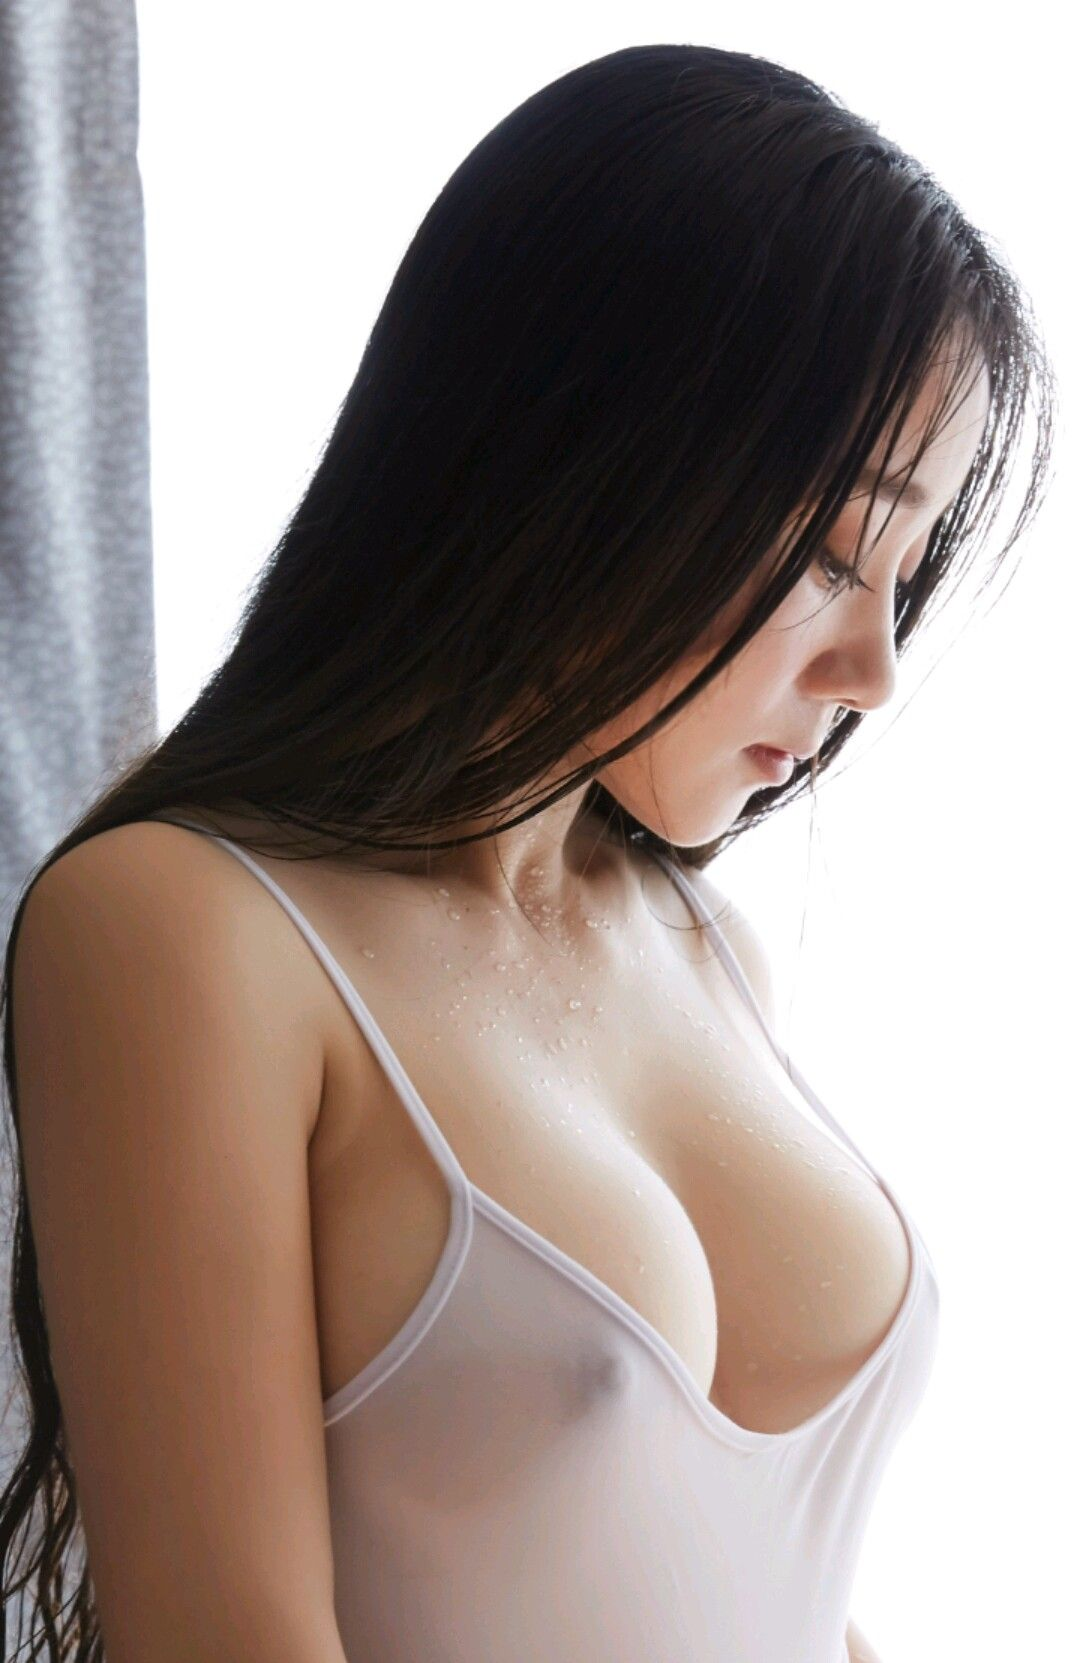 Video no bra asian, wild n out naked butt